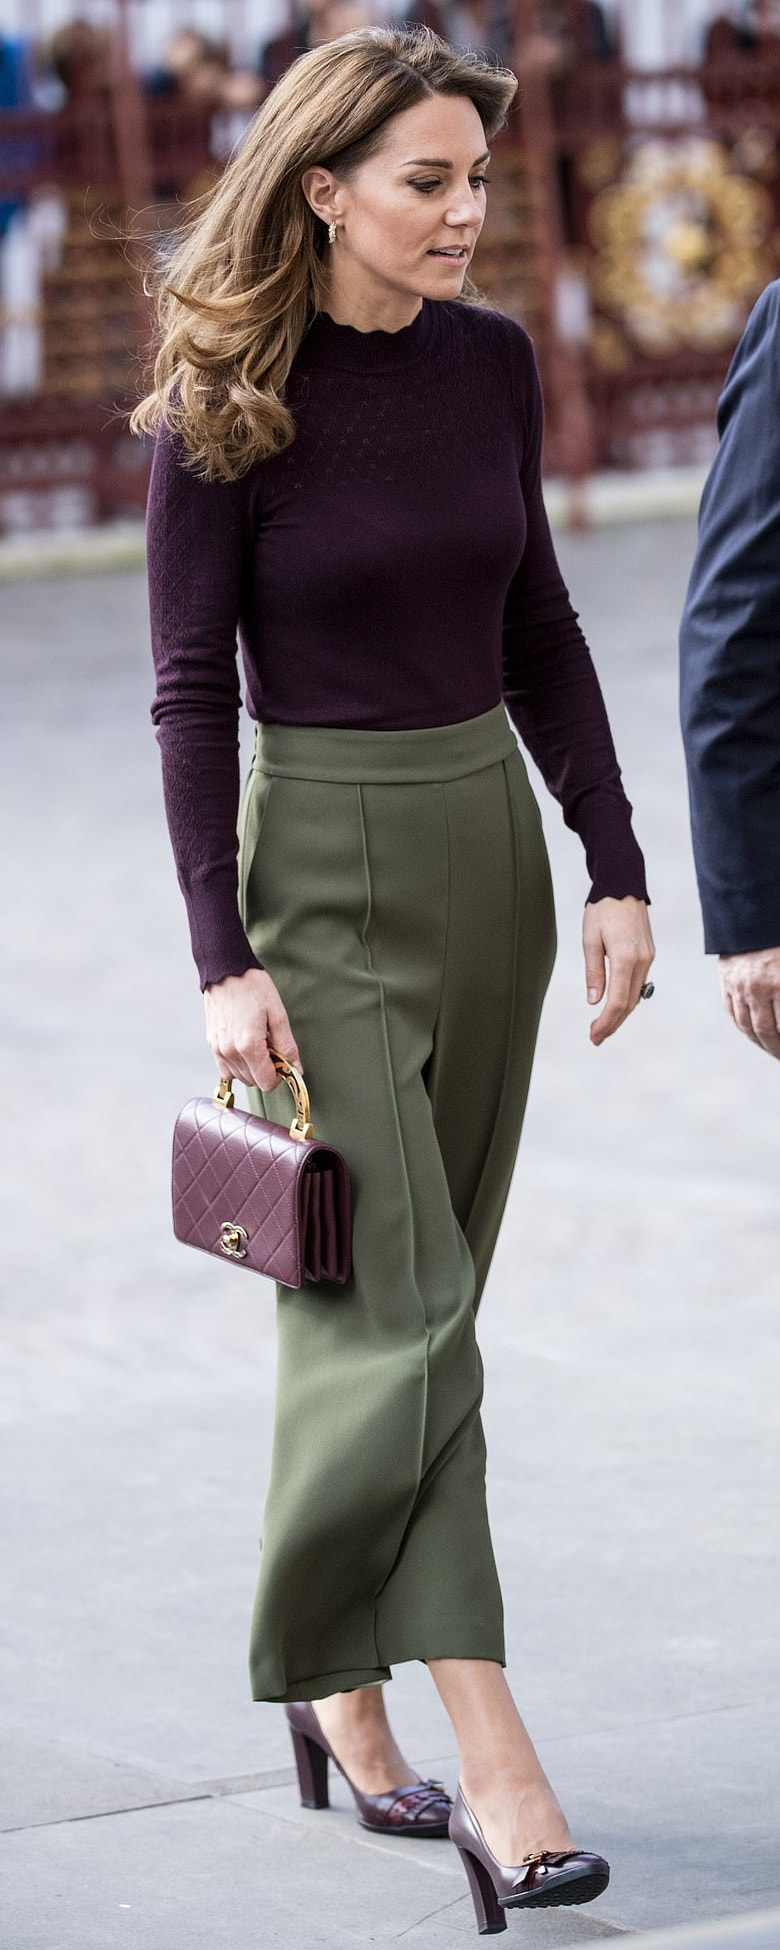 Jigsaw Khaki Relaxed Gathered Waist Culotte as seen on Kate Middleton, The Duchess of Cambridge